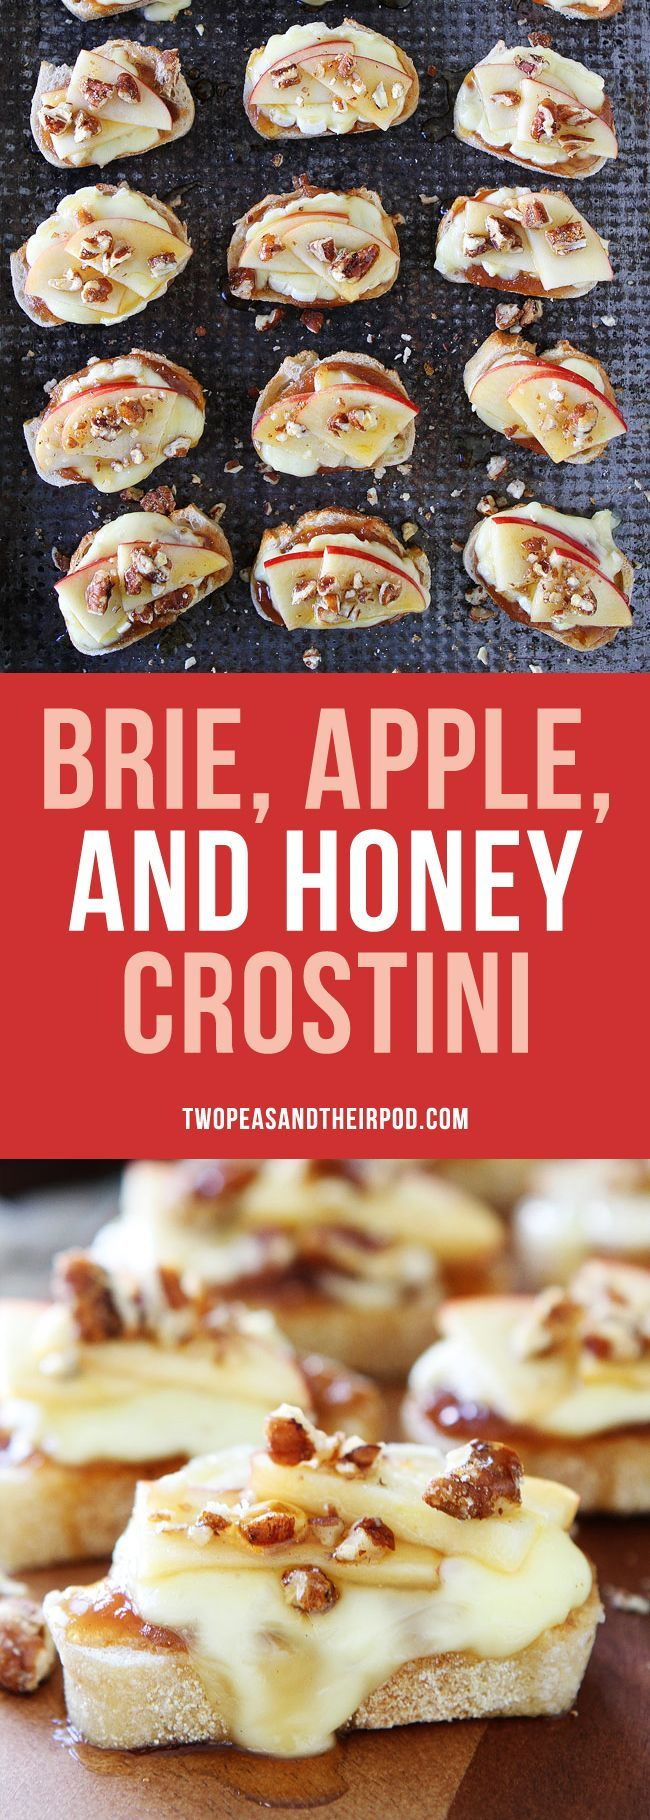 Engagement party appetizer - Brie, Apple, and Honey Crostini - yummy wedding small bites - bridal shower, engagement party, or bachelorette party food ideas {Two Peas in Their Pod}